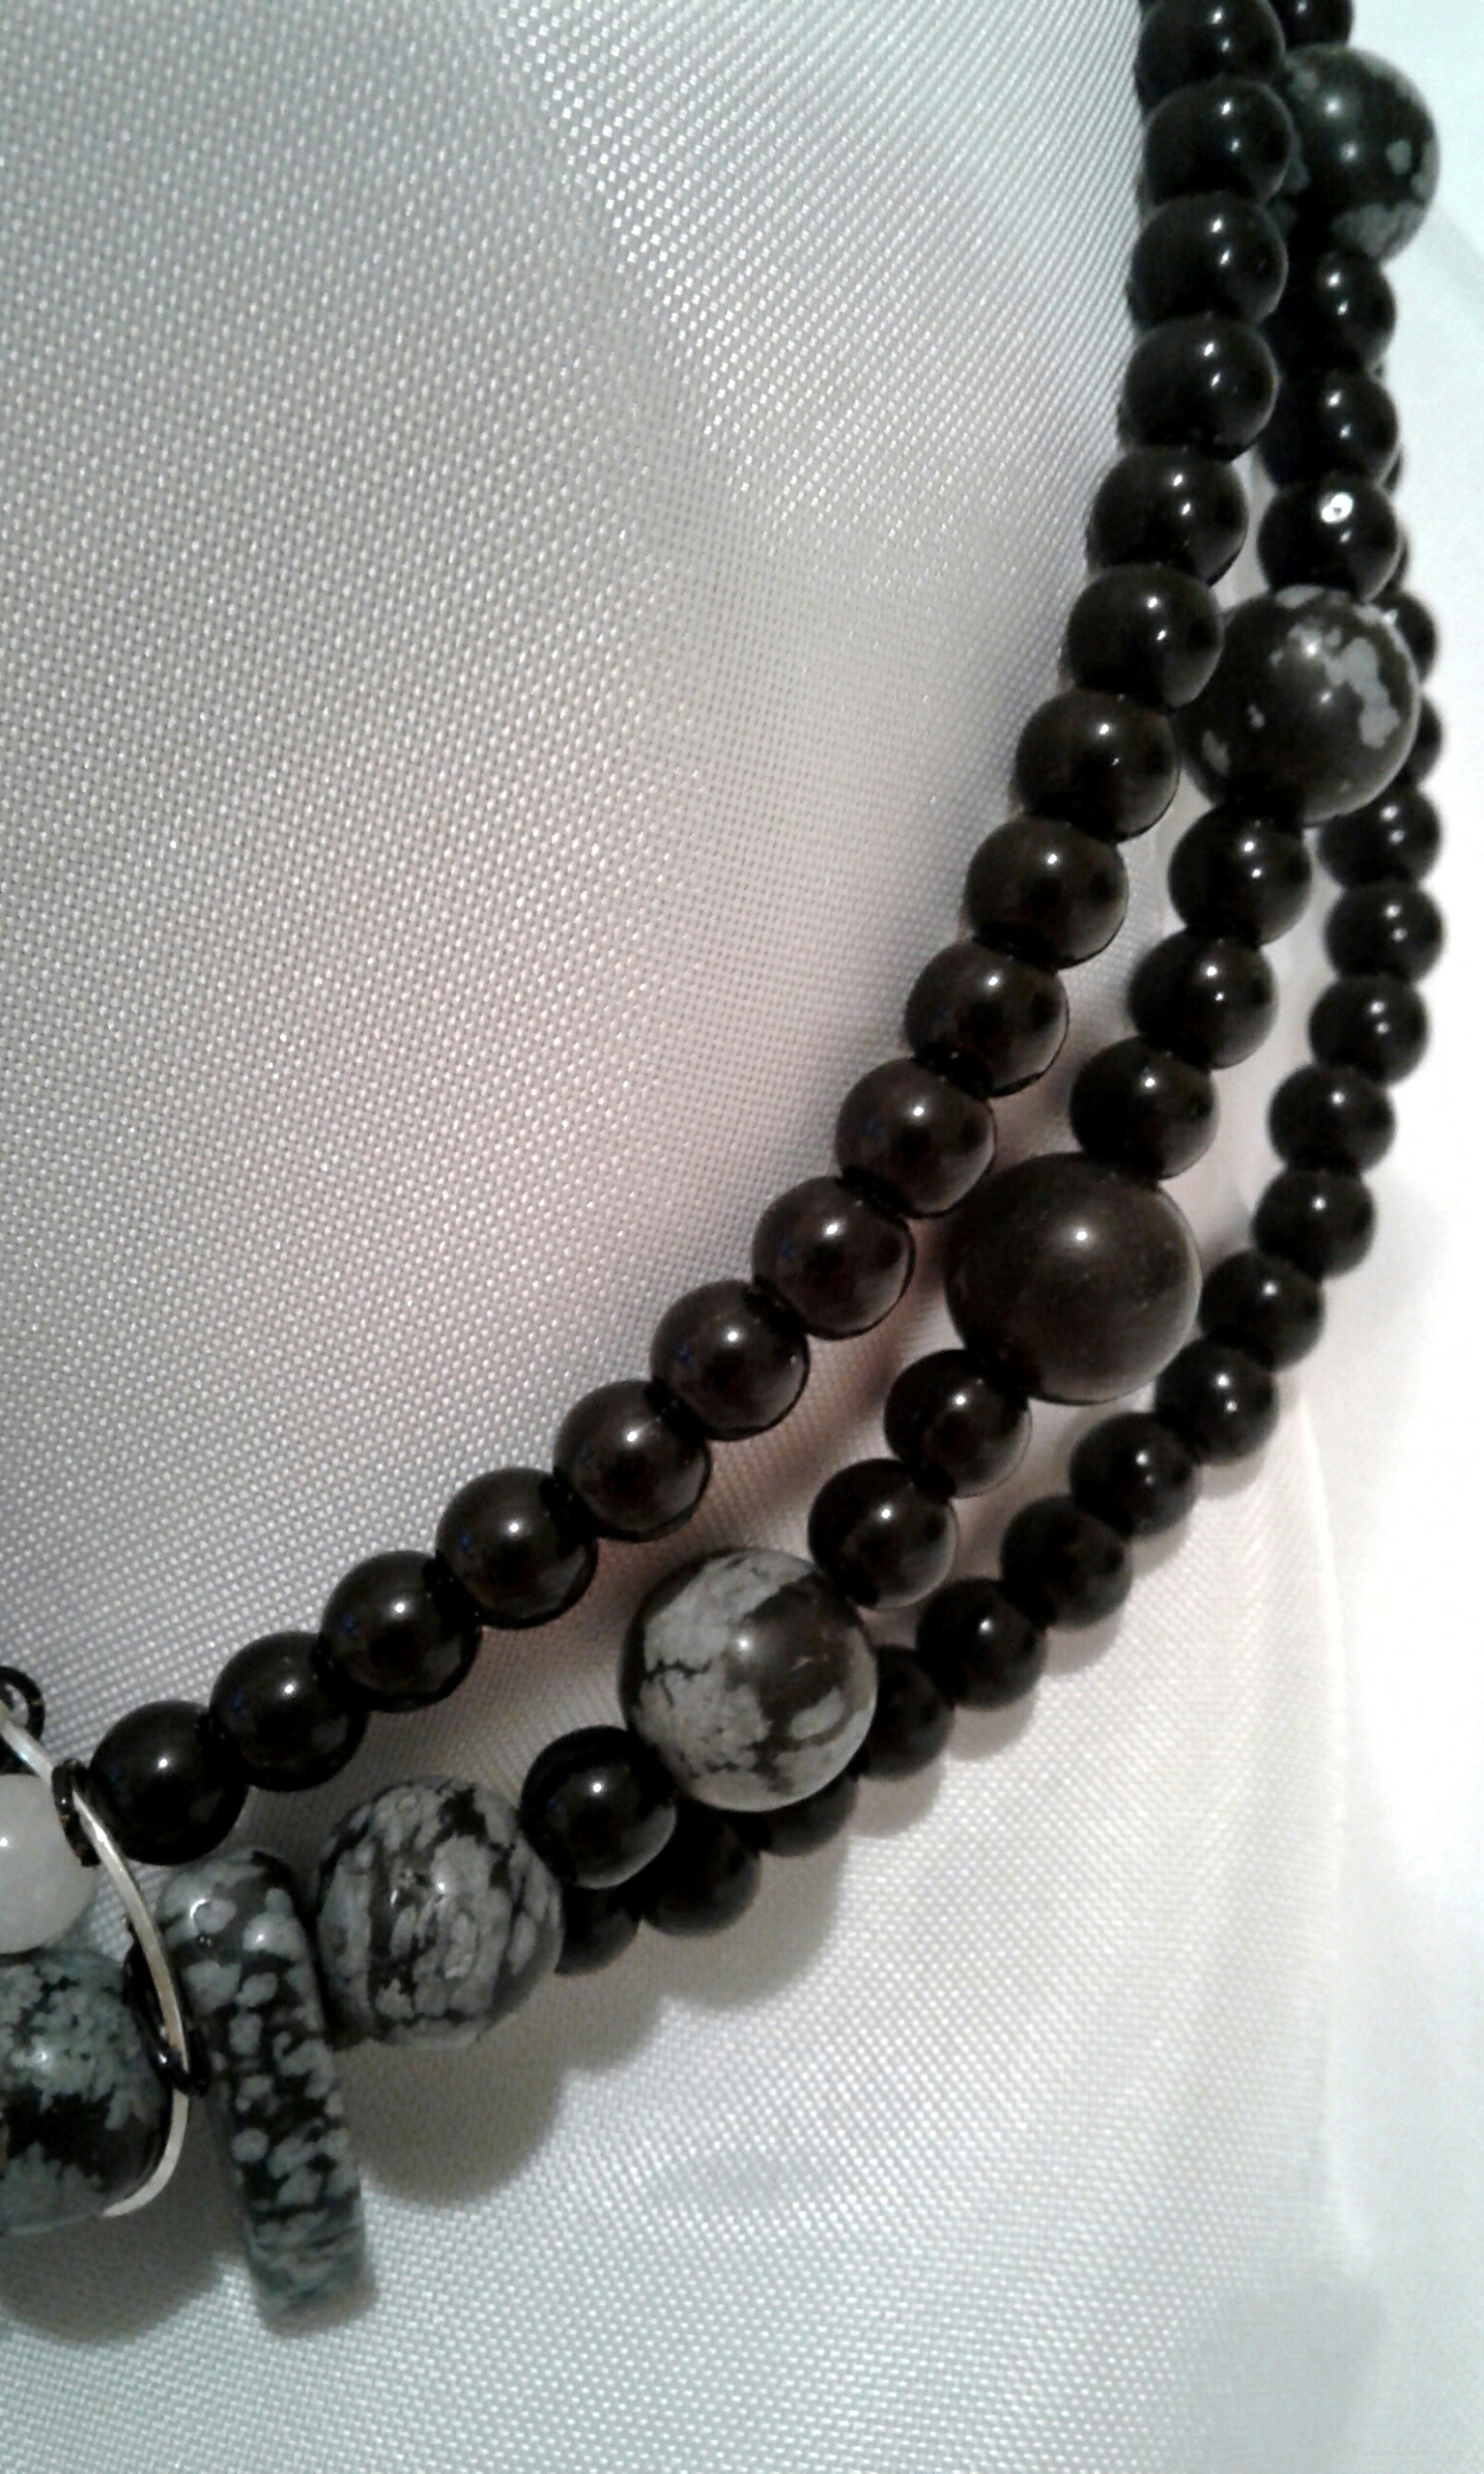 Close-up shot of obsidian beads.